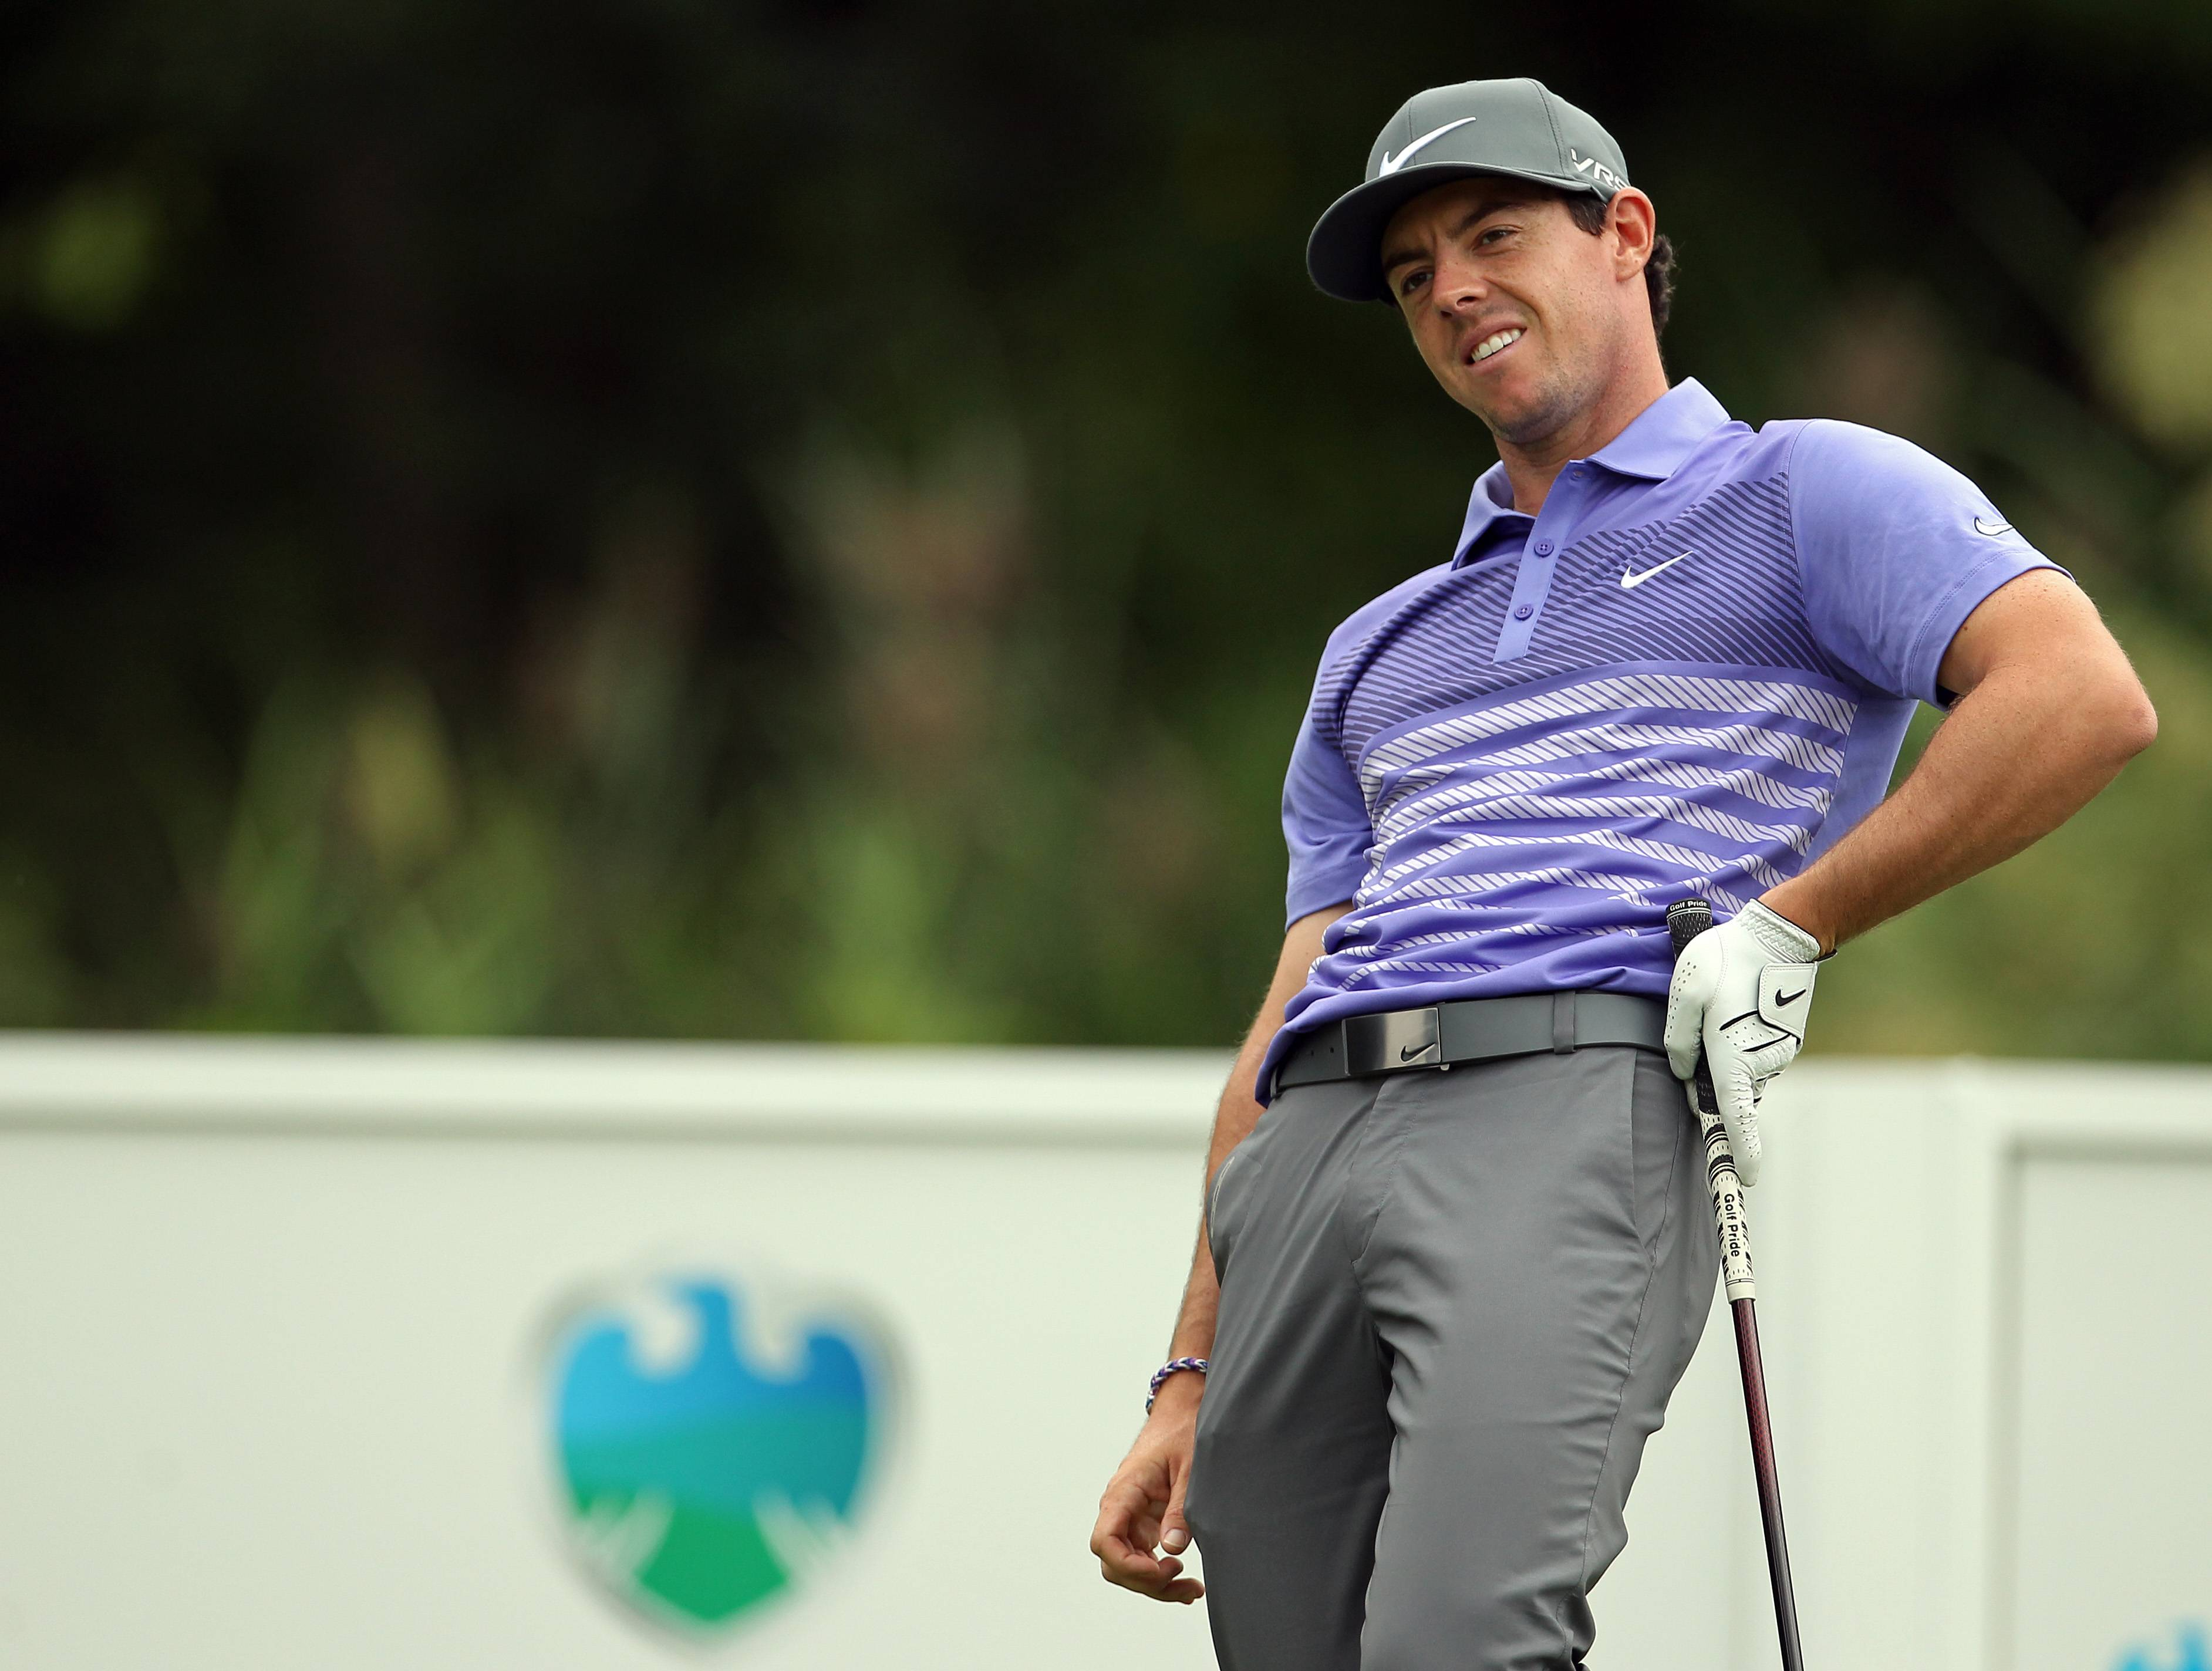 Rory McIlroy, of Northern Ireland, reacts to his tee shot on the fifth hole during second round play at The Barclays golf tournament Friday, Aug. 22, 2014, in Paramus, N.J. (AP Photo/Adam Hunger)